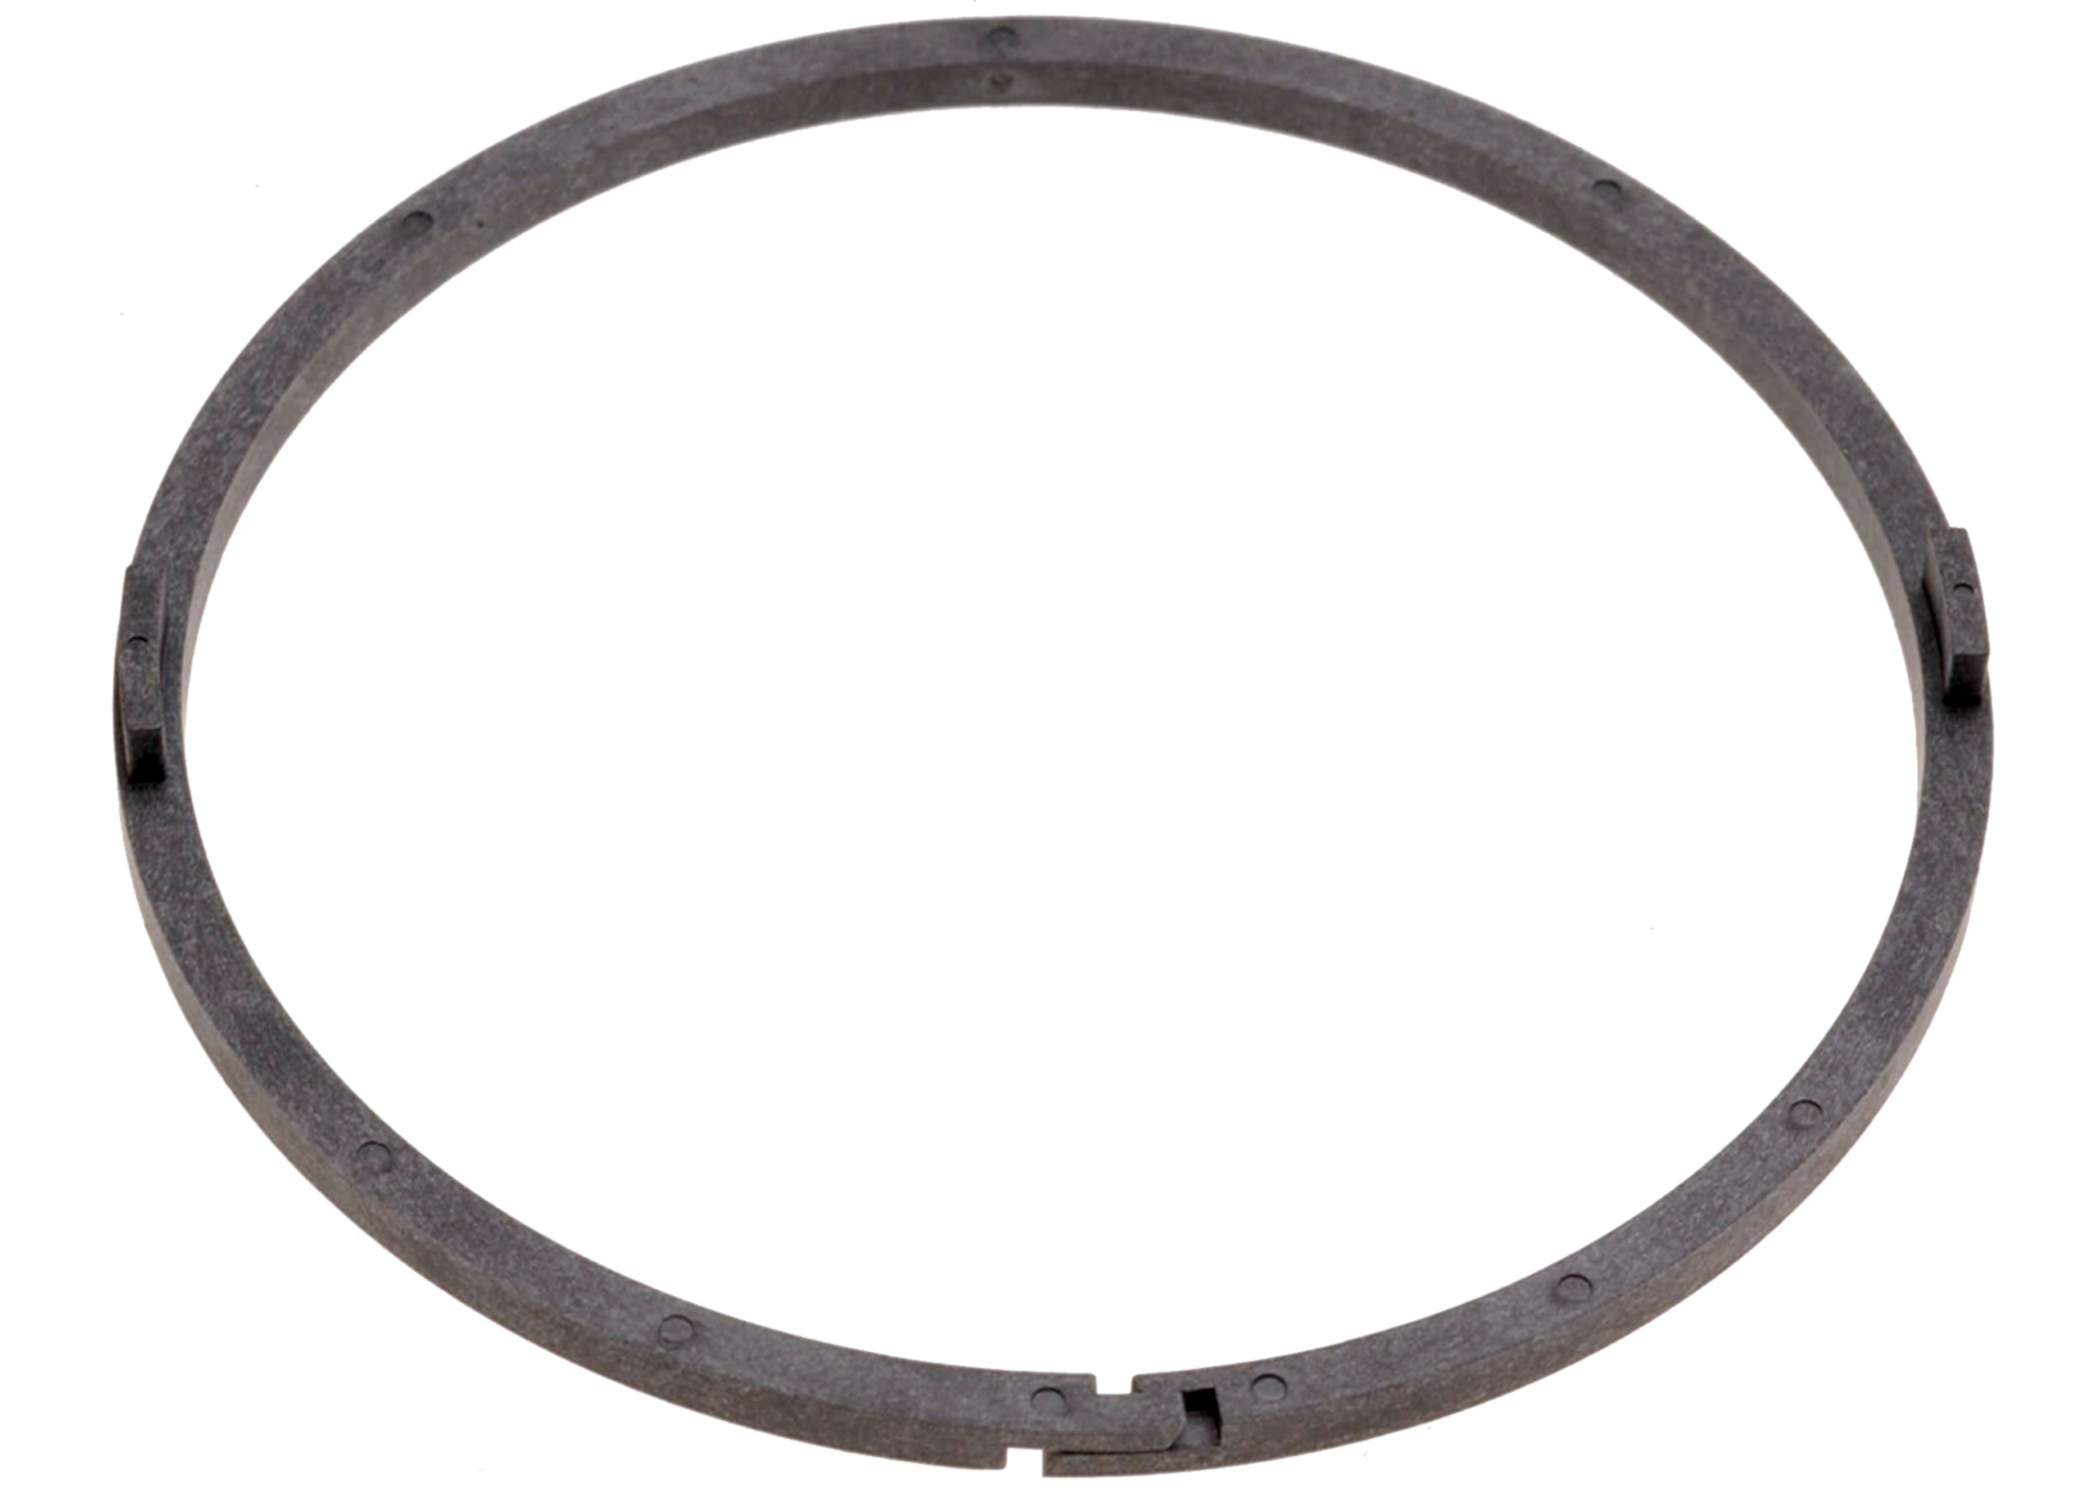 ACDELCO OE SERVICE CANADA - 2nd Clutch Housing Fluid Seal Ring Seal - DCG 24209498